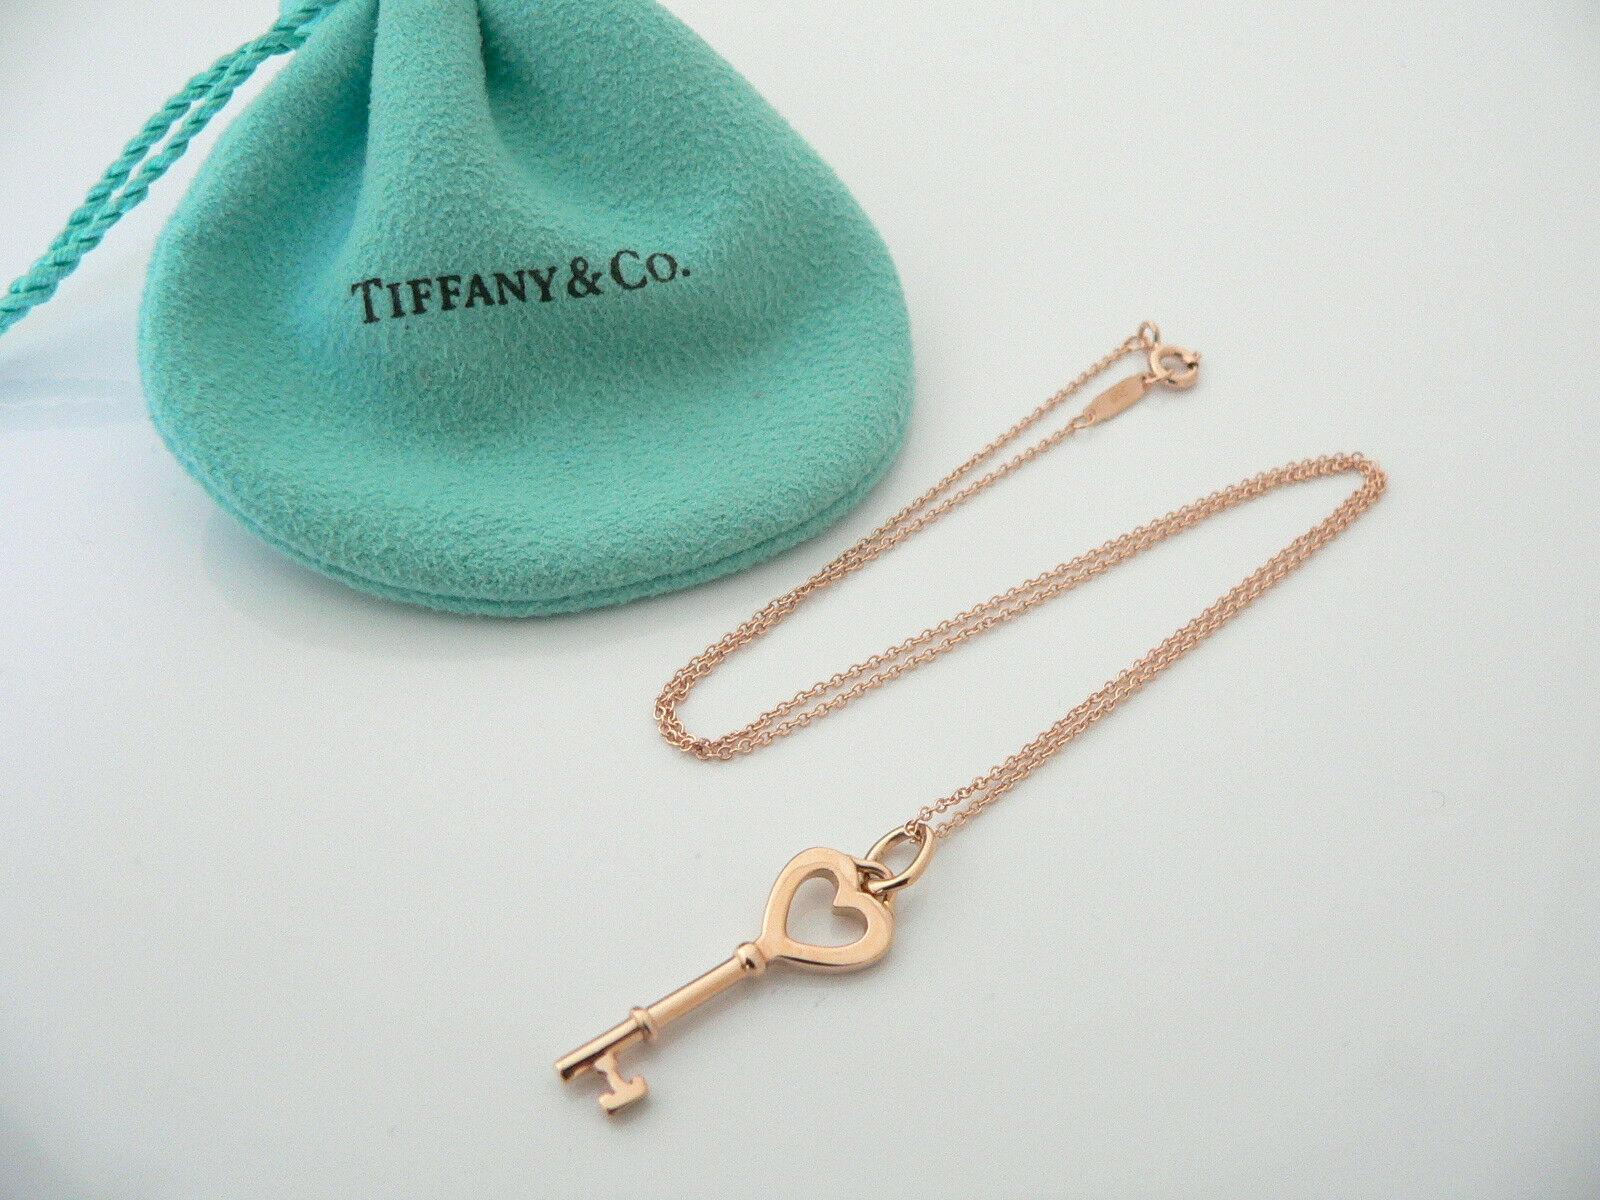 Tiffany & Co 18K Rose Gold Heart Key Necklace Pendant Chain Gift Pouch Love